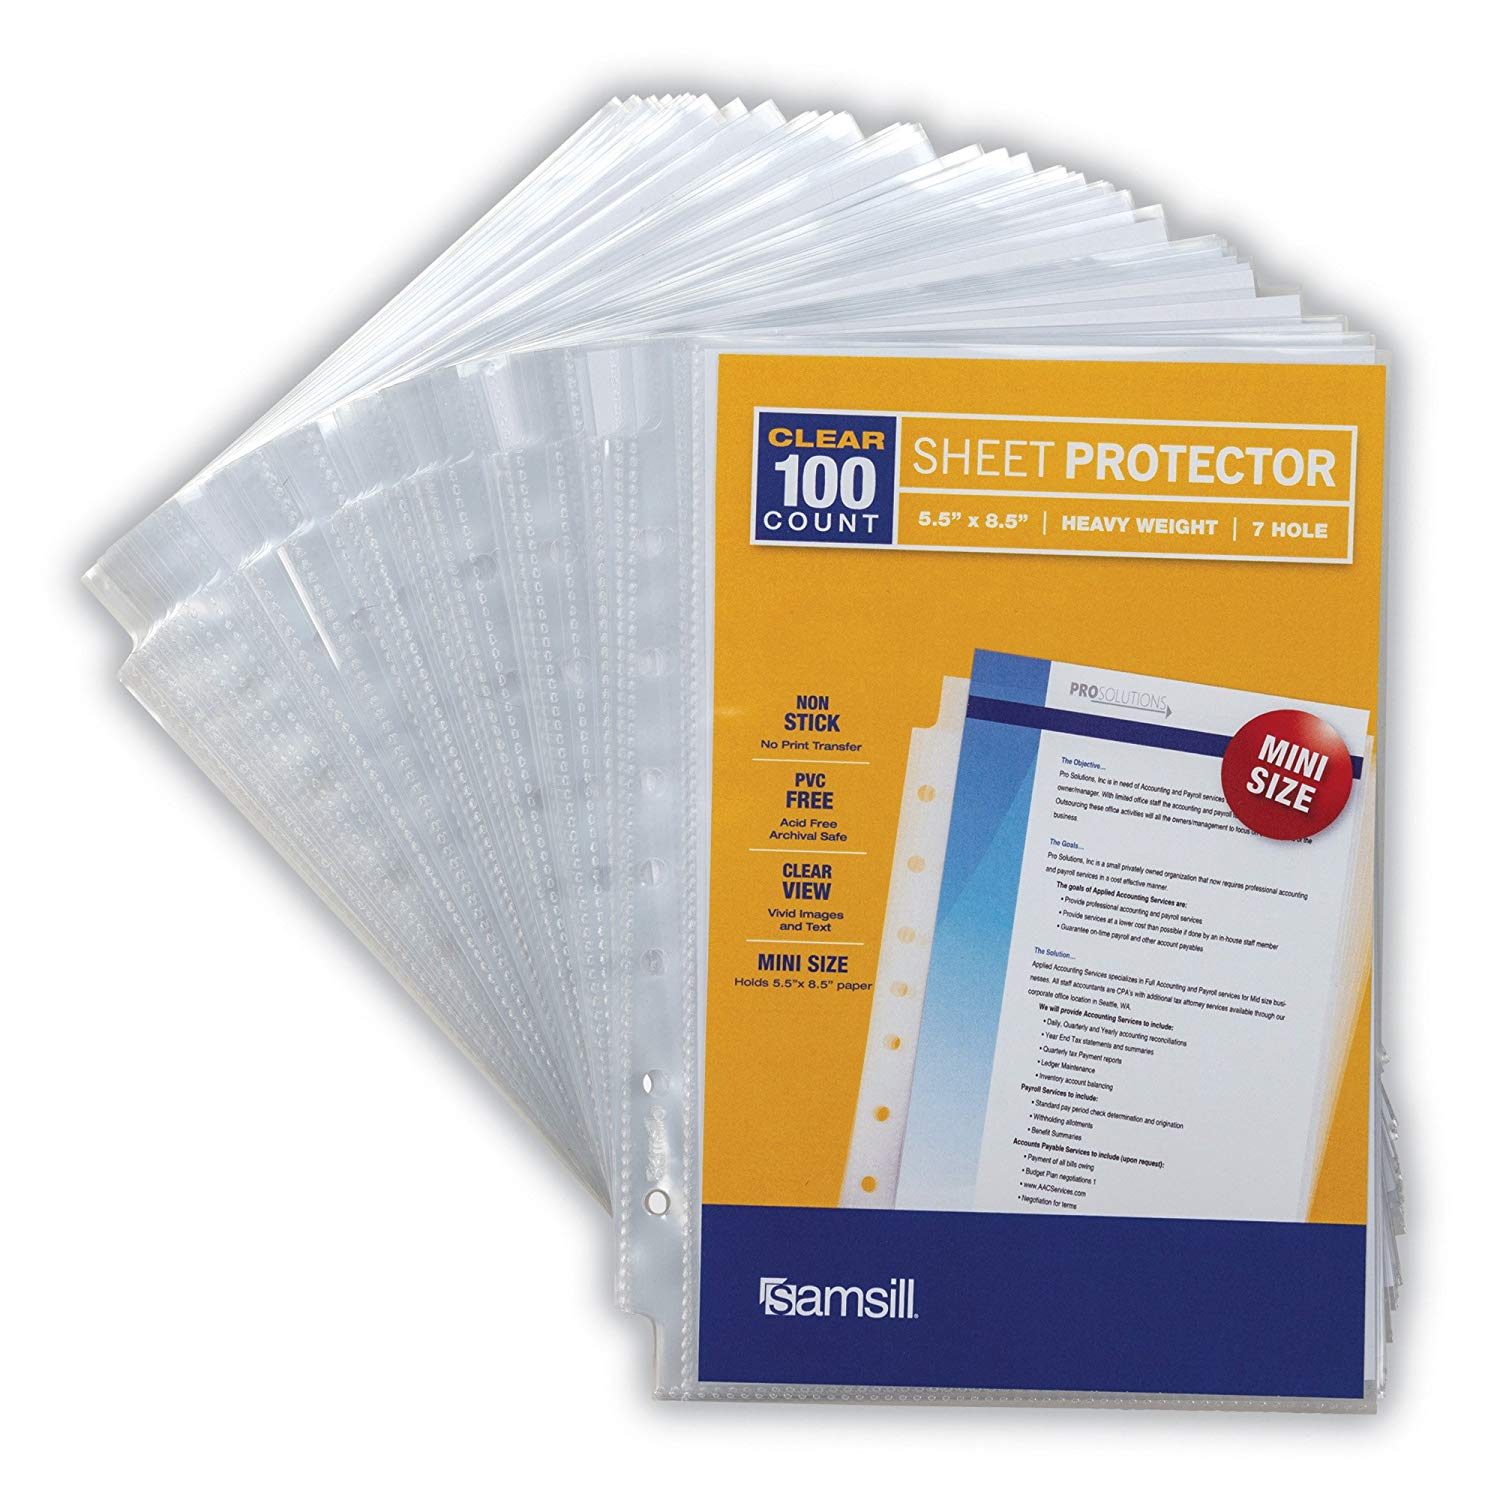 Cheap Archival Sheet Protectors Find Archival Sheet Protectors Deals On Line At Alibaba Com